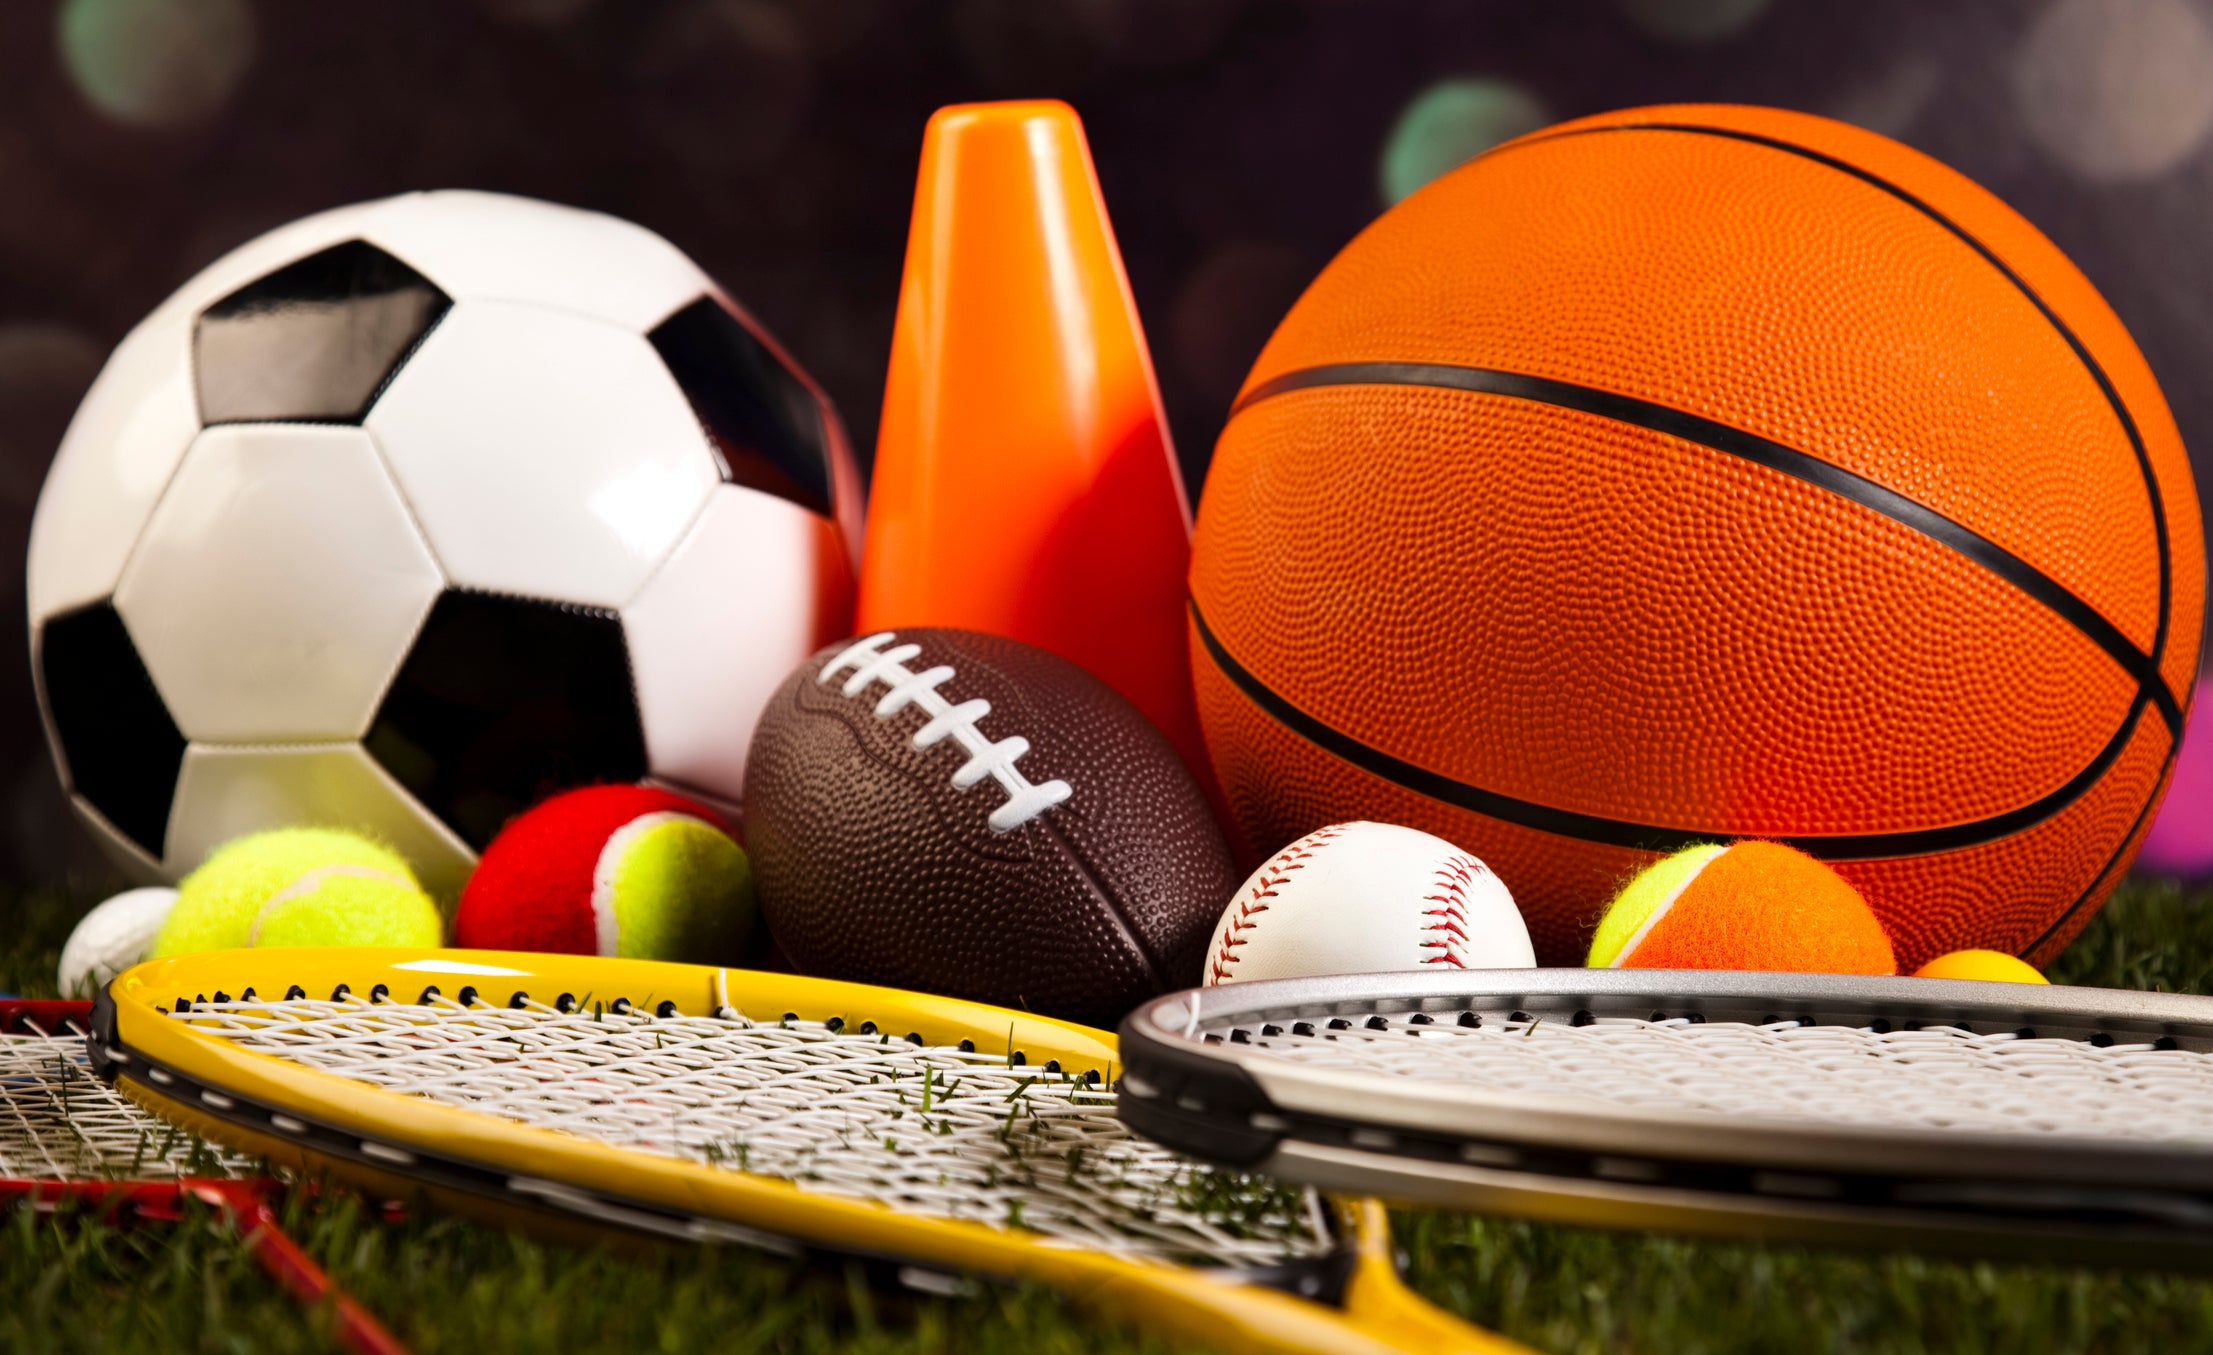 sports together balls sporting goods betting equipment putting